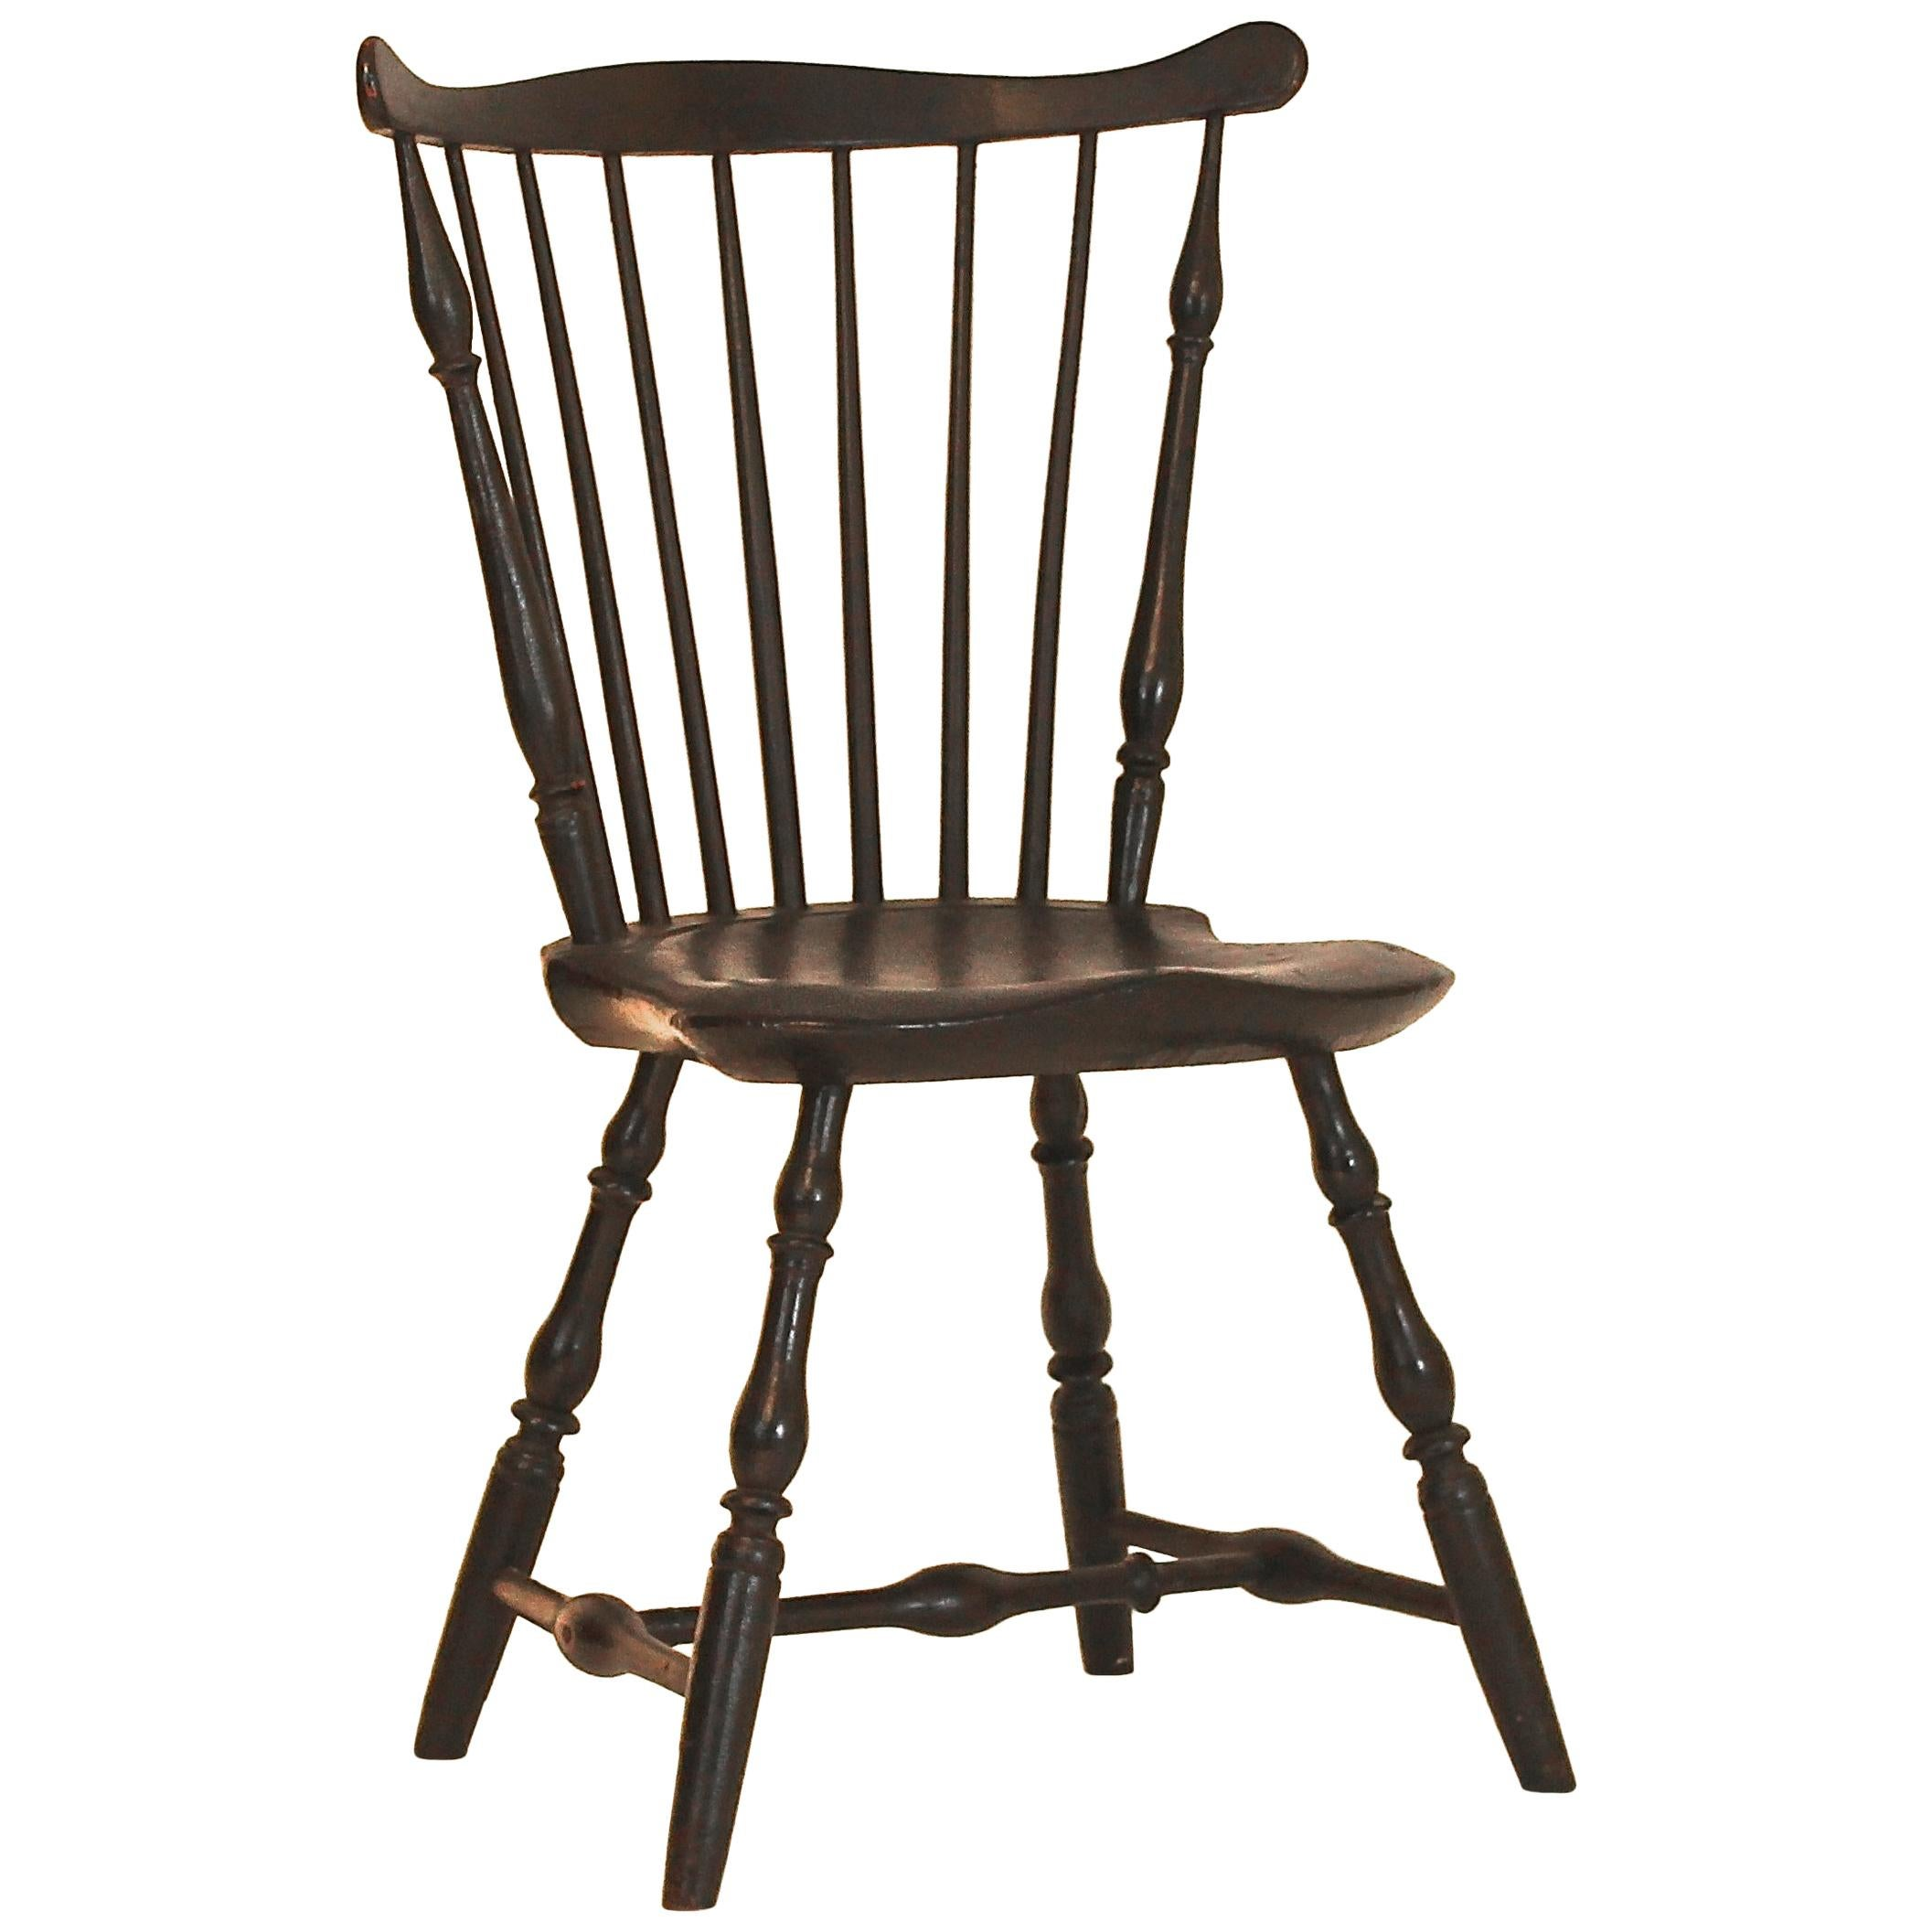 Antique And Vintage Windsor Chairs 175 For Sale At 1stdibs